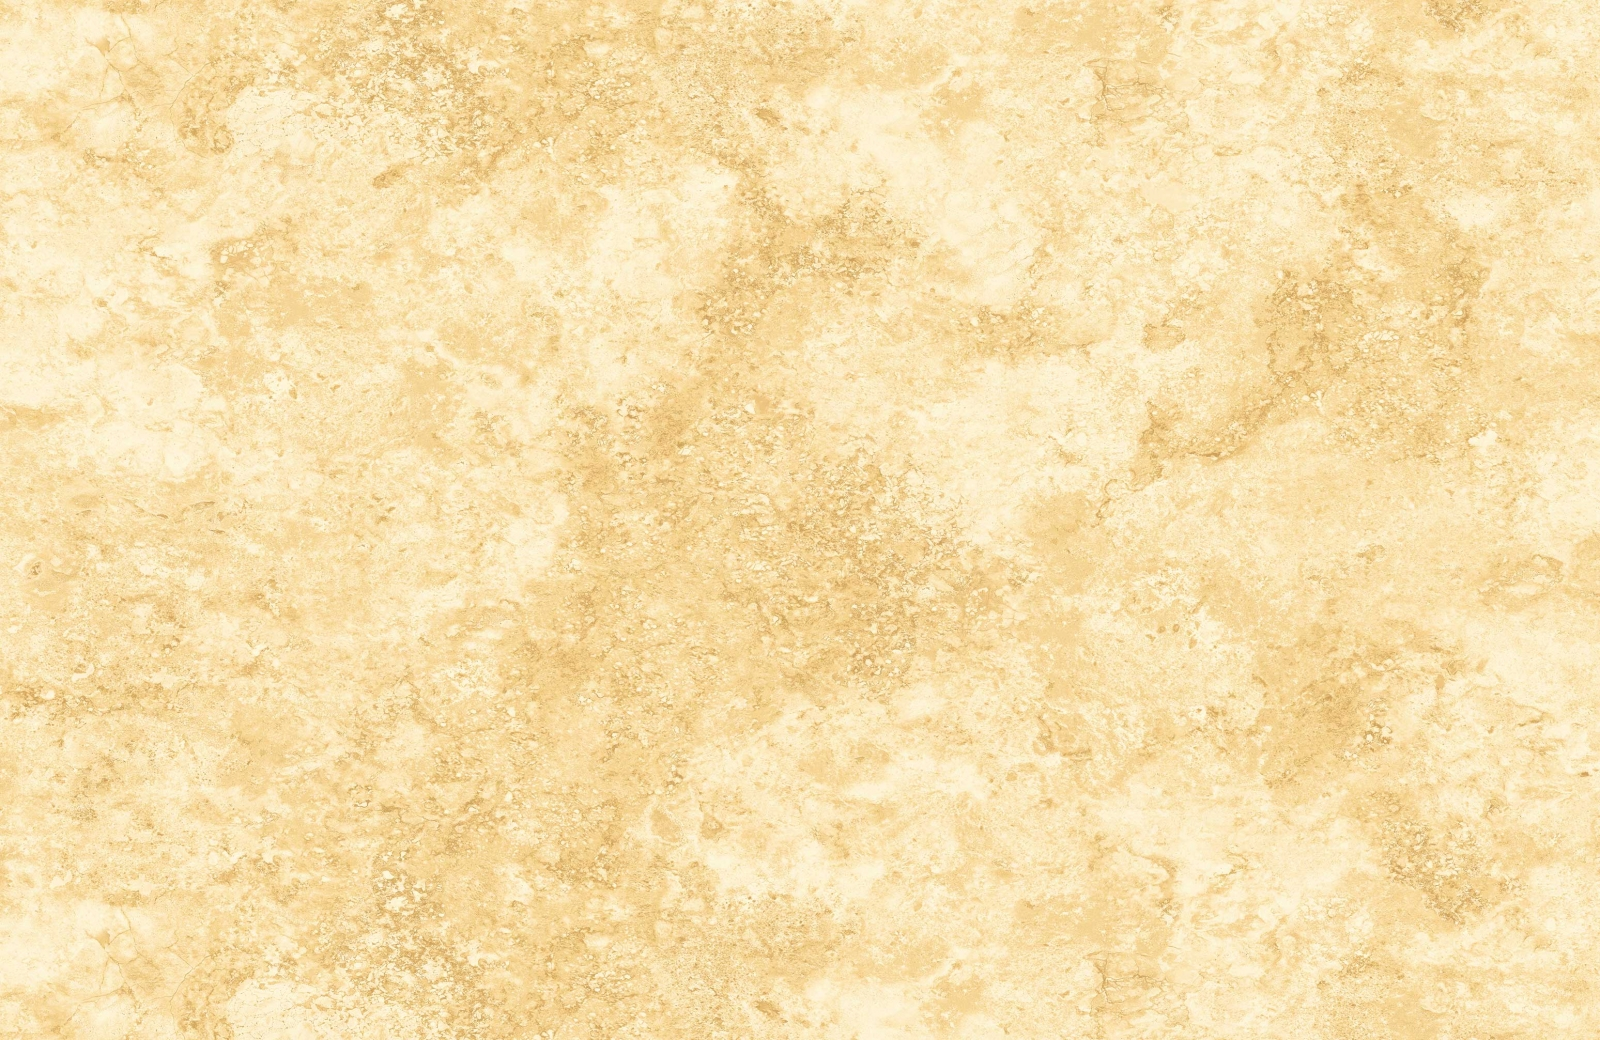 Good Wallpaper Marble Copper - 39305-68-Sandstone-Oxidized-Copper_1  Best Photo Reference_448122.jpg